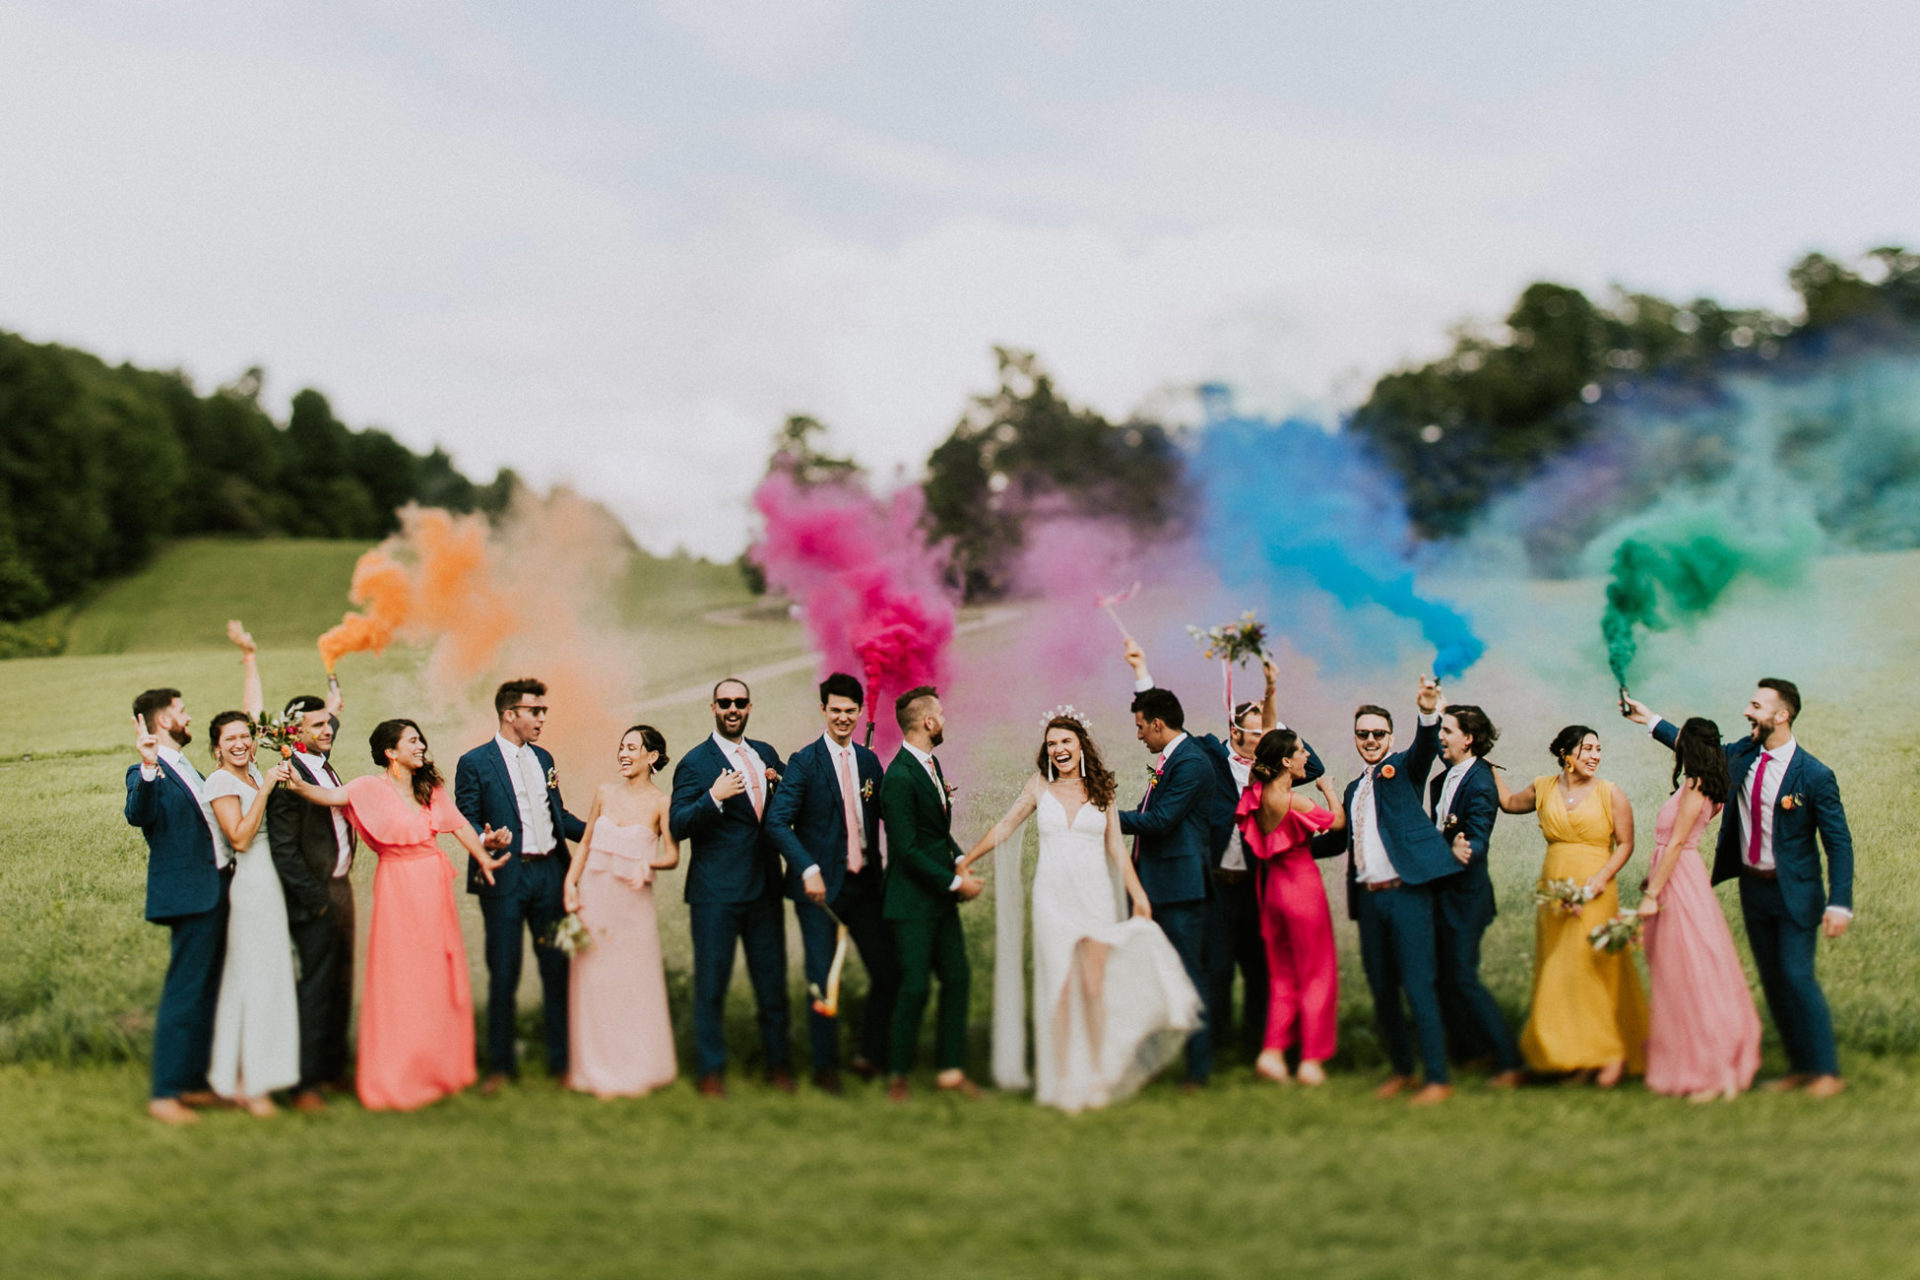 best-top-los-angeles-destination-wedding-photographer-hipster-modern-quirky-editorial-romantic-epic-29-bridal-party-smoke-bombs-rainbow-bright-colorful-fun